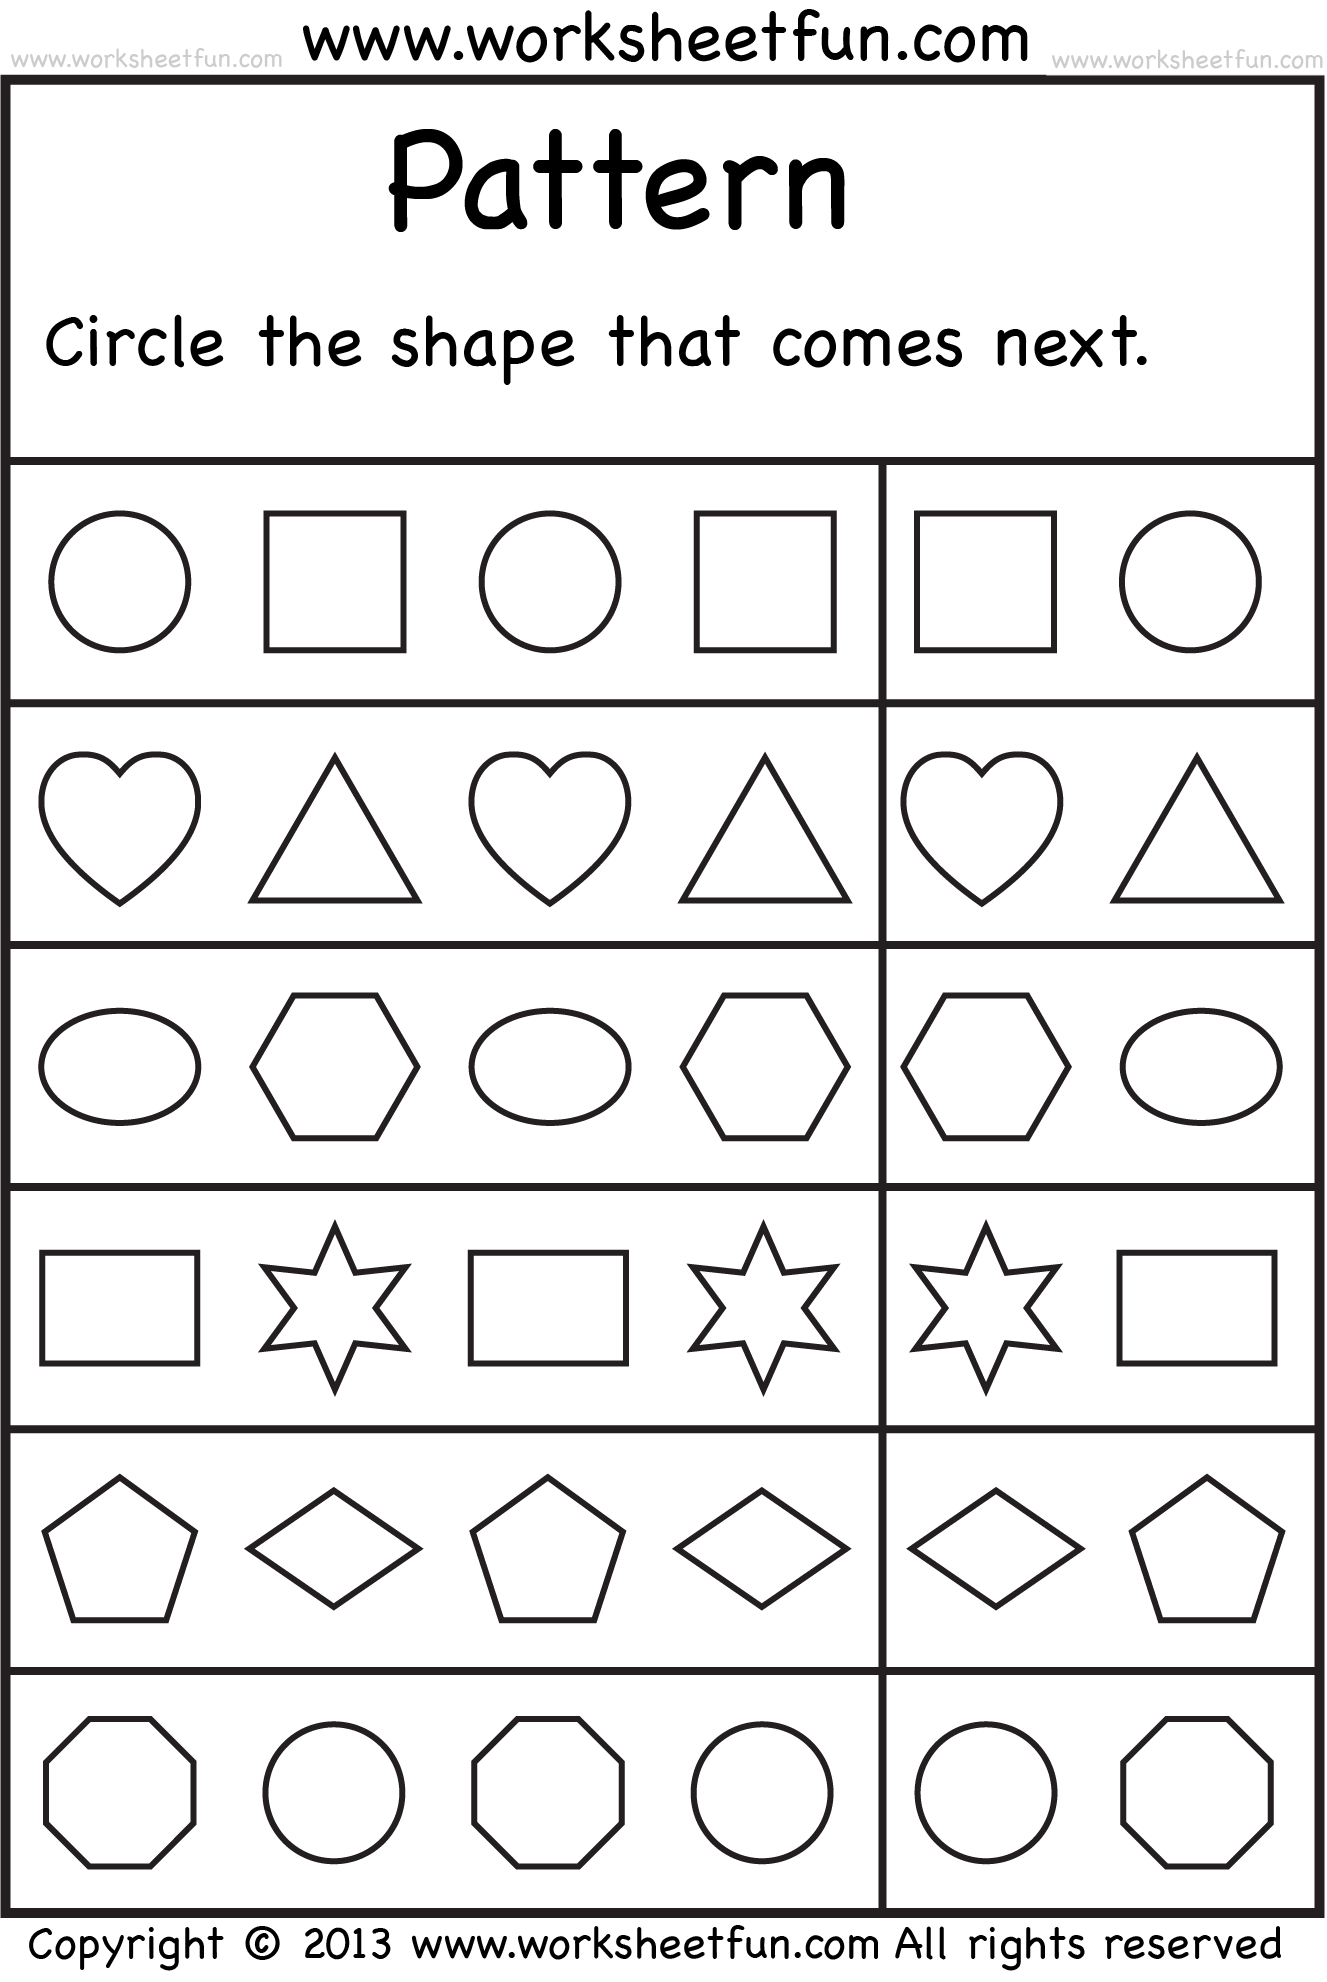 Proatmealus  Nice  Images About School Worksheets On Pinterest  Number Words  With Outstanding  Images About School Worksheets On Pinterest  Number Words Alphabet Worksheets And Free Printable Kindergarten Worksheets With Alluring Linear And Nonlinear Functions Worksheet Also Perimeter Of Complex Shapes Worksheets In Addition Inherited Traits Worksheet And Printable Multiplying Fractions Worksheets As Well As Teaching  Hour Clock Worksheets Additionally Note Taking Worksheet Electricity Answers From Pinterestcom With Proatmealus  Outstanding  Images About School Worksheets On Pinterest  Number Words  With Alluring  Images About School Worksheets On Pinterest  Number Words Alphabet Worksheets And Free Printable Kindergarten Worksheets And Nice Linear And Nonlinear Functions Worksheet Also Perimeter Of Complex Shapes Worksheets In Addition Inherited Traits Worksheet From Pinterestcom